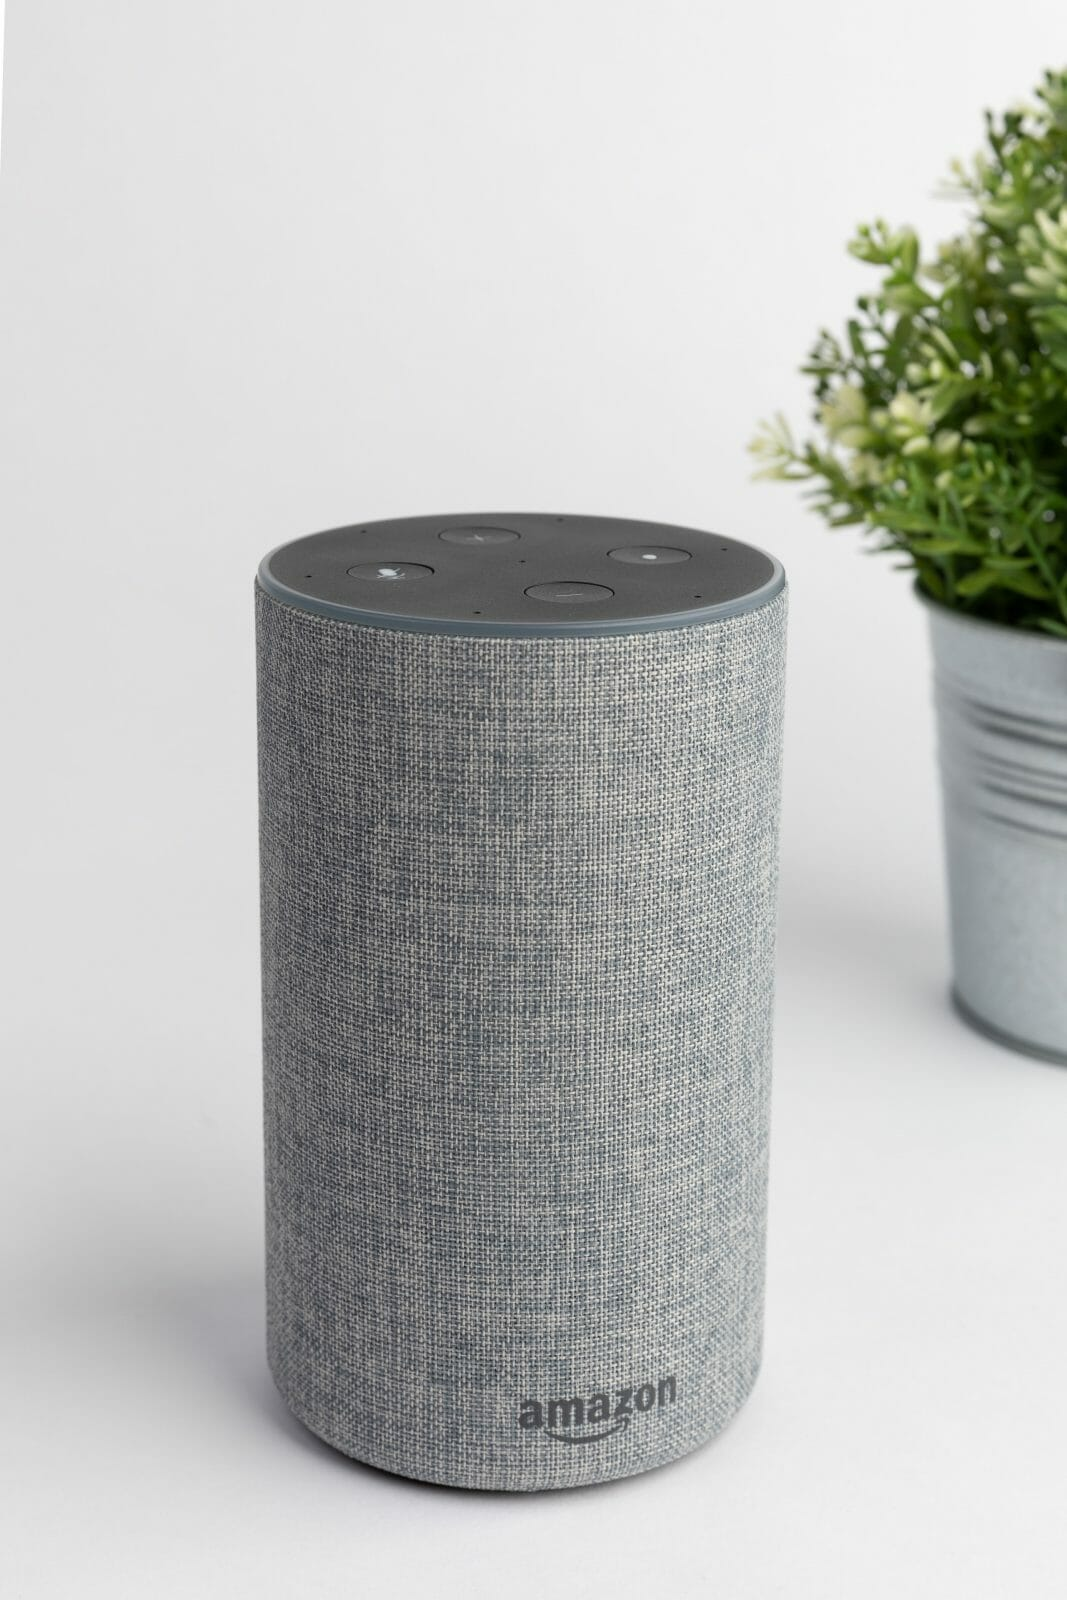 Picture of Amazon Alexa for Real Estate News for Investors Podcast Episode #772